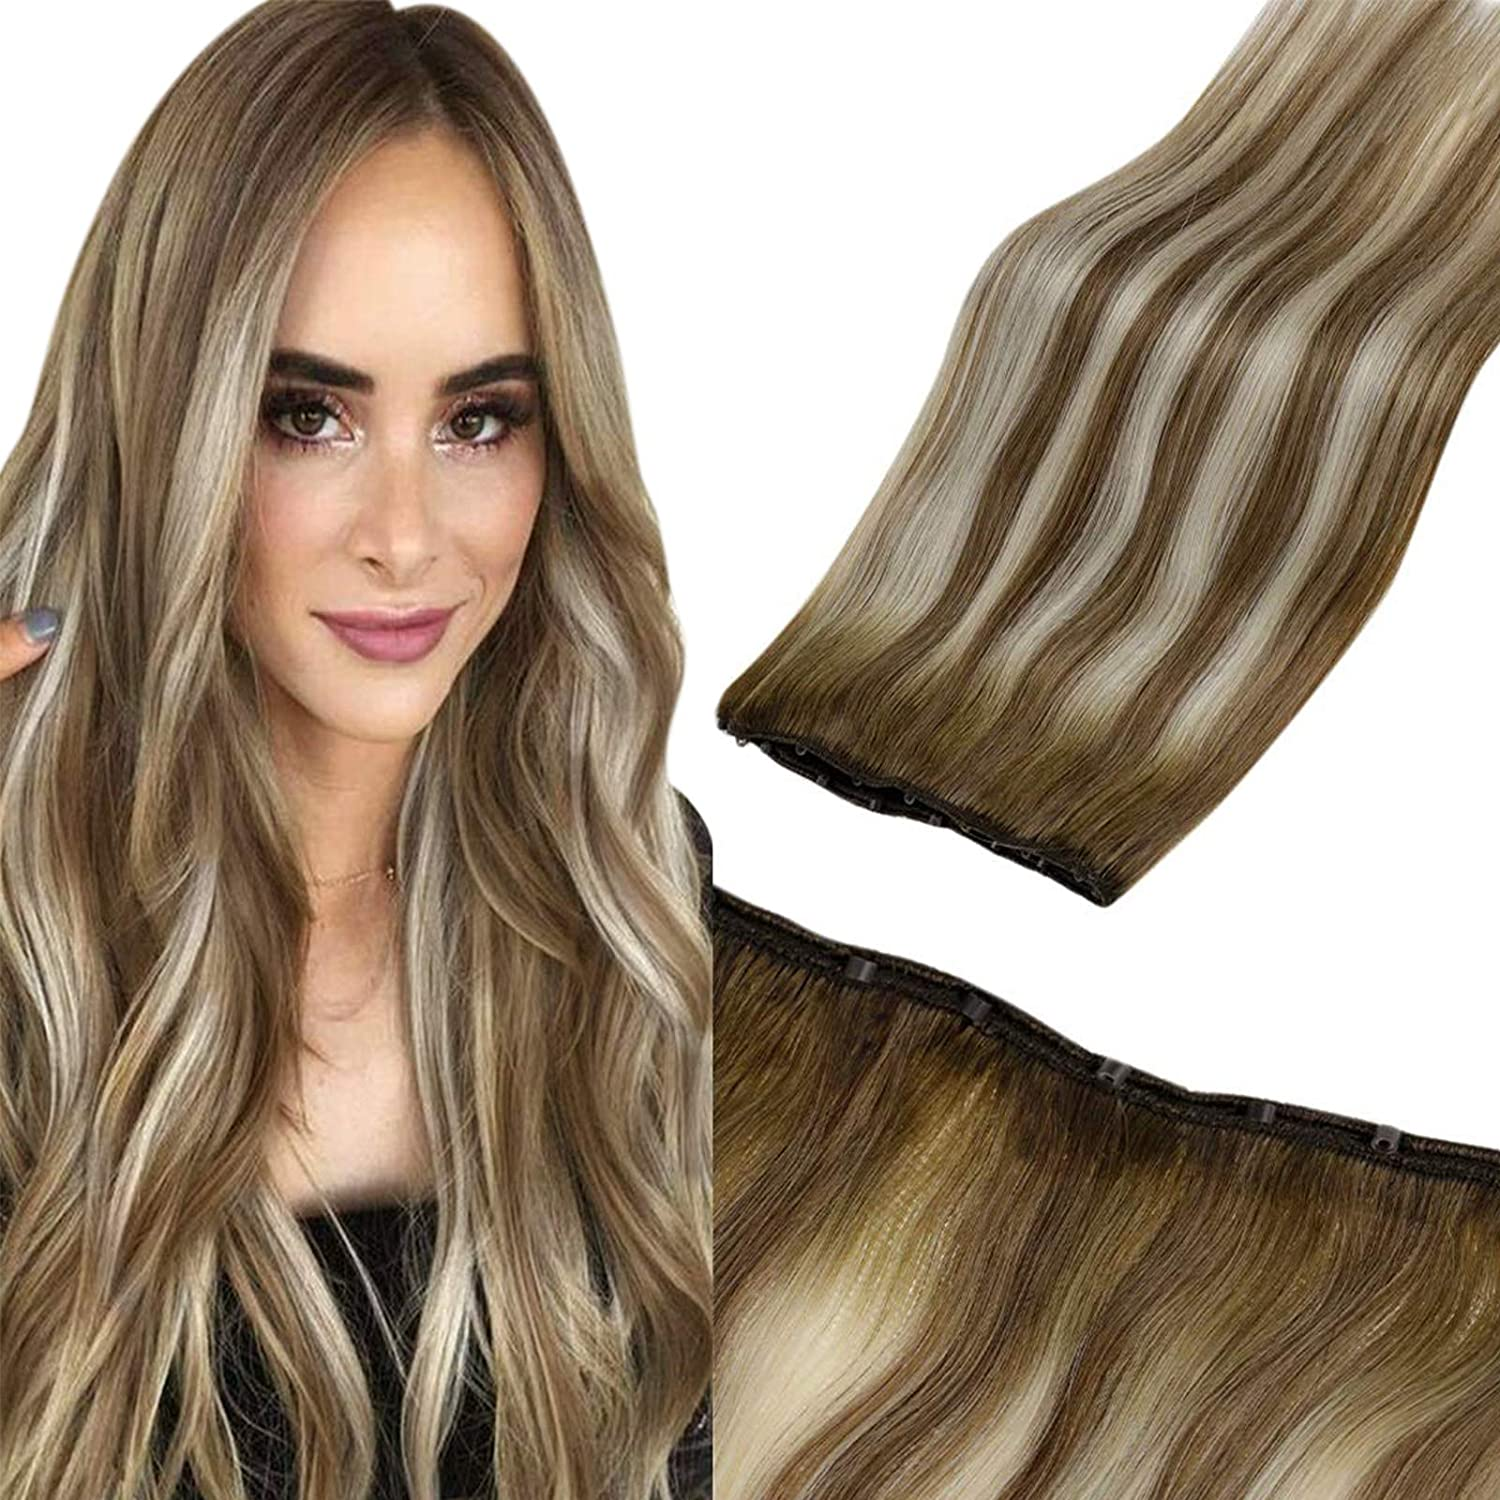 Amazon Com Laavoo Balayage Easy Weft Hair Extensions Micro Beaded Weft Human Hair Extensions Silky Straight Balayage Ash Brown Highlight Platinum Blonde Straight Micro Hair Weft Brown Blonde 50g 20inch Beauty